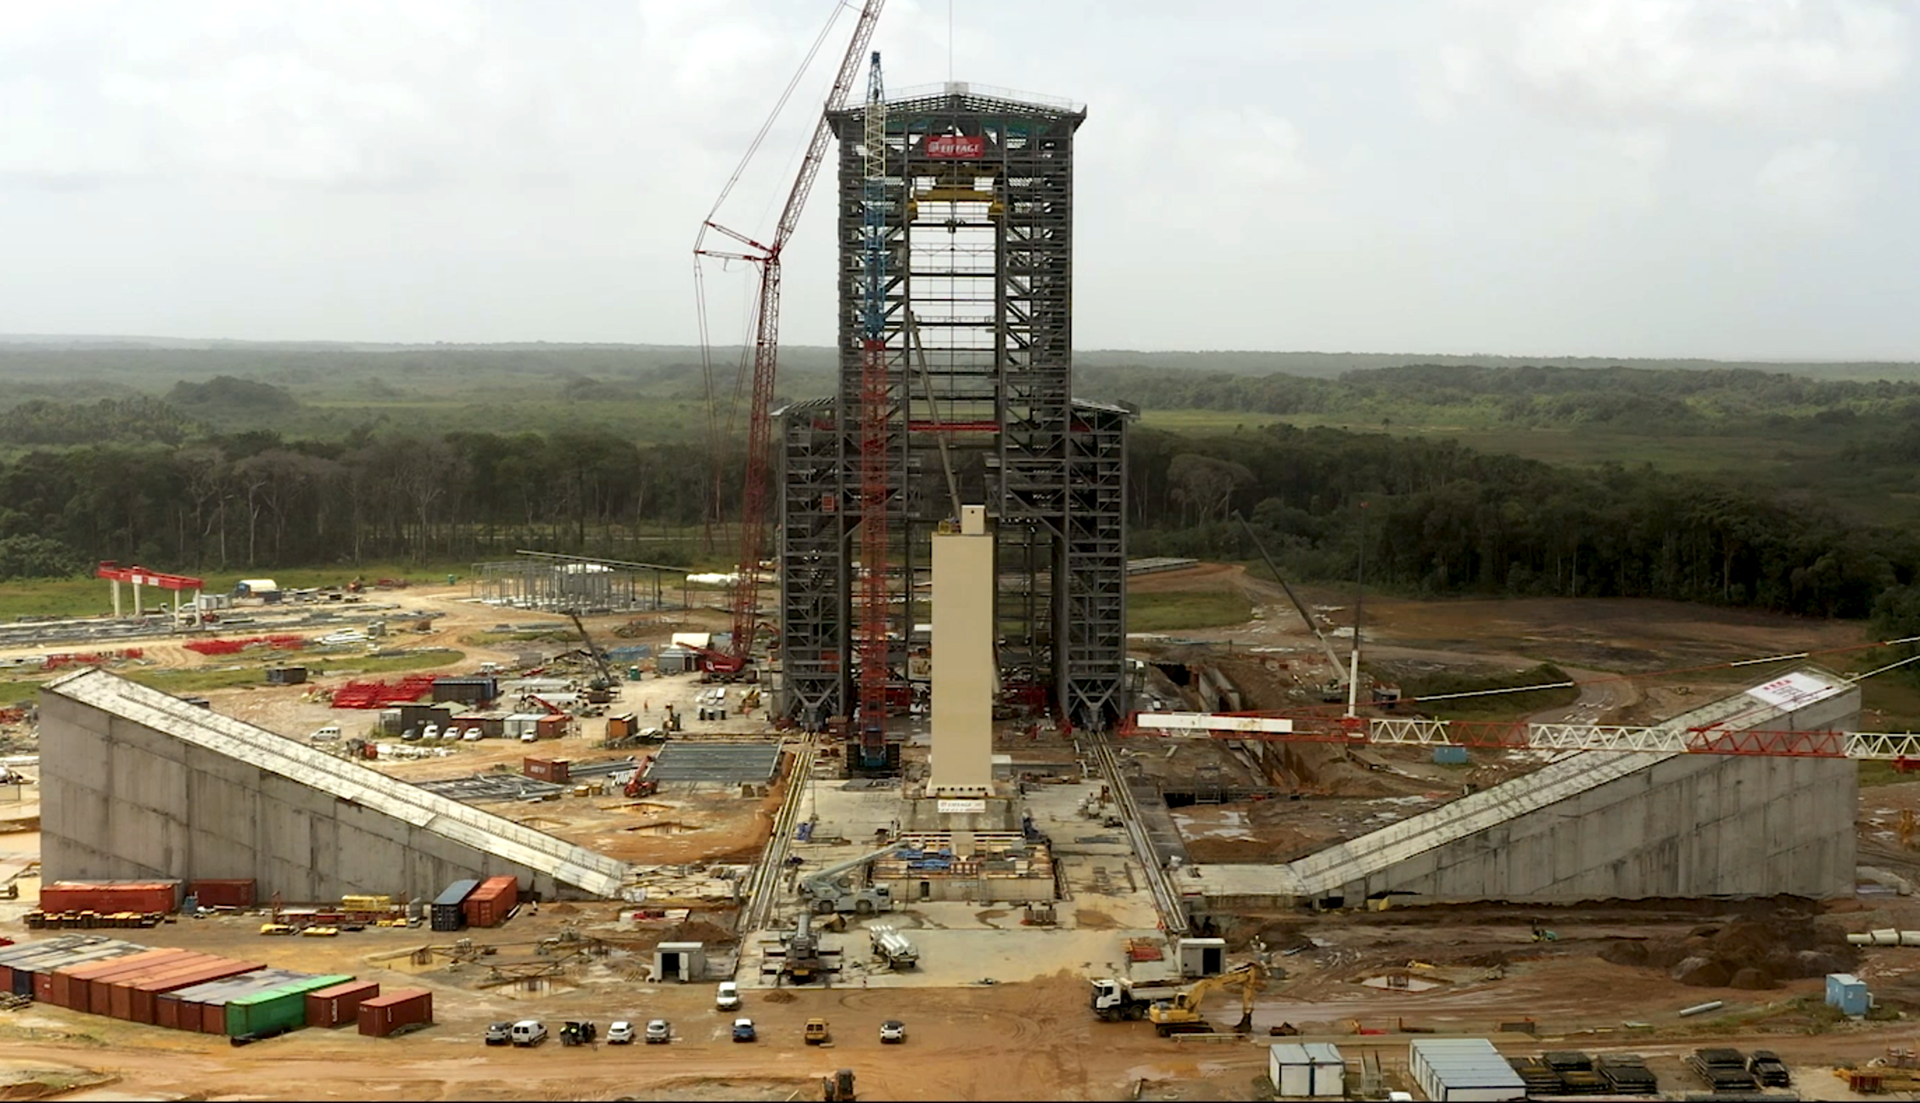 Ariane 6 launch pad under construction